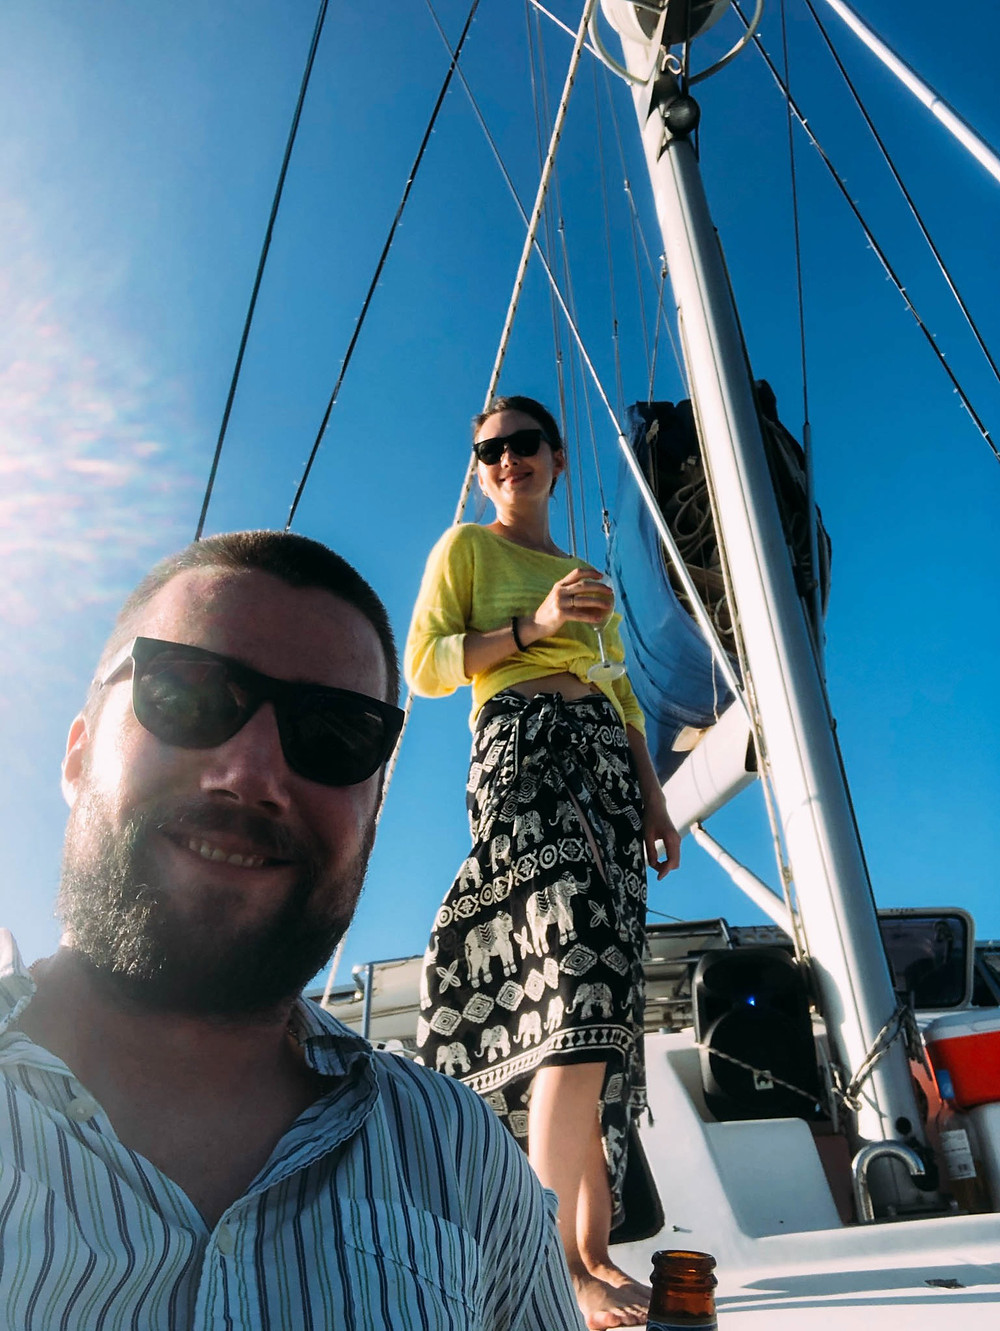 Aboard our Kendwa catamaran cruise - Chipp not willing to make the effort to stand for a picture...